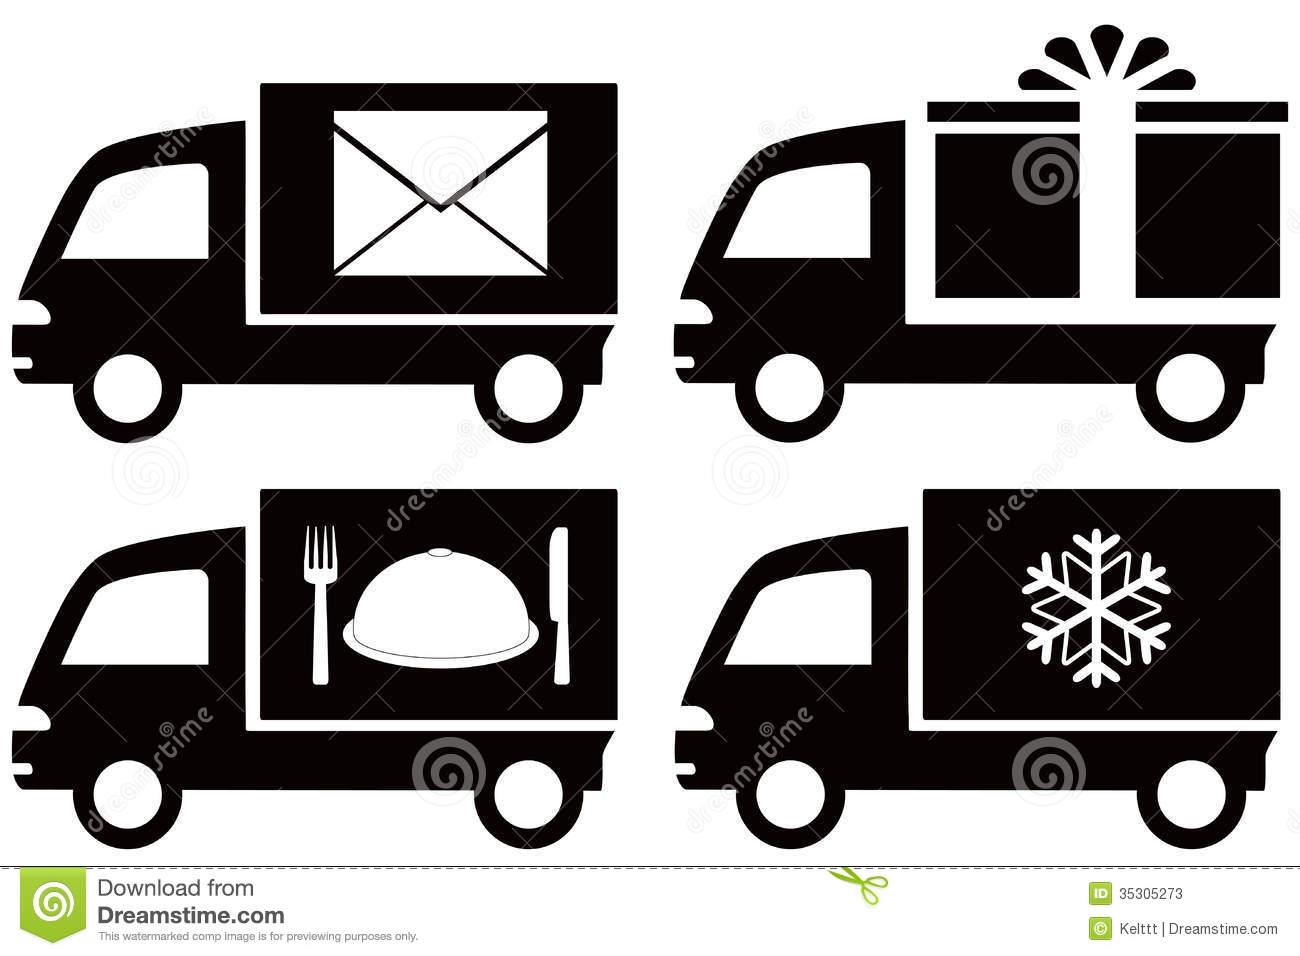 Truck with snowflake, envelope, food dish, gift bo